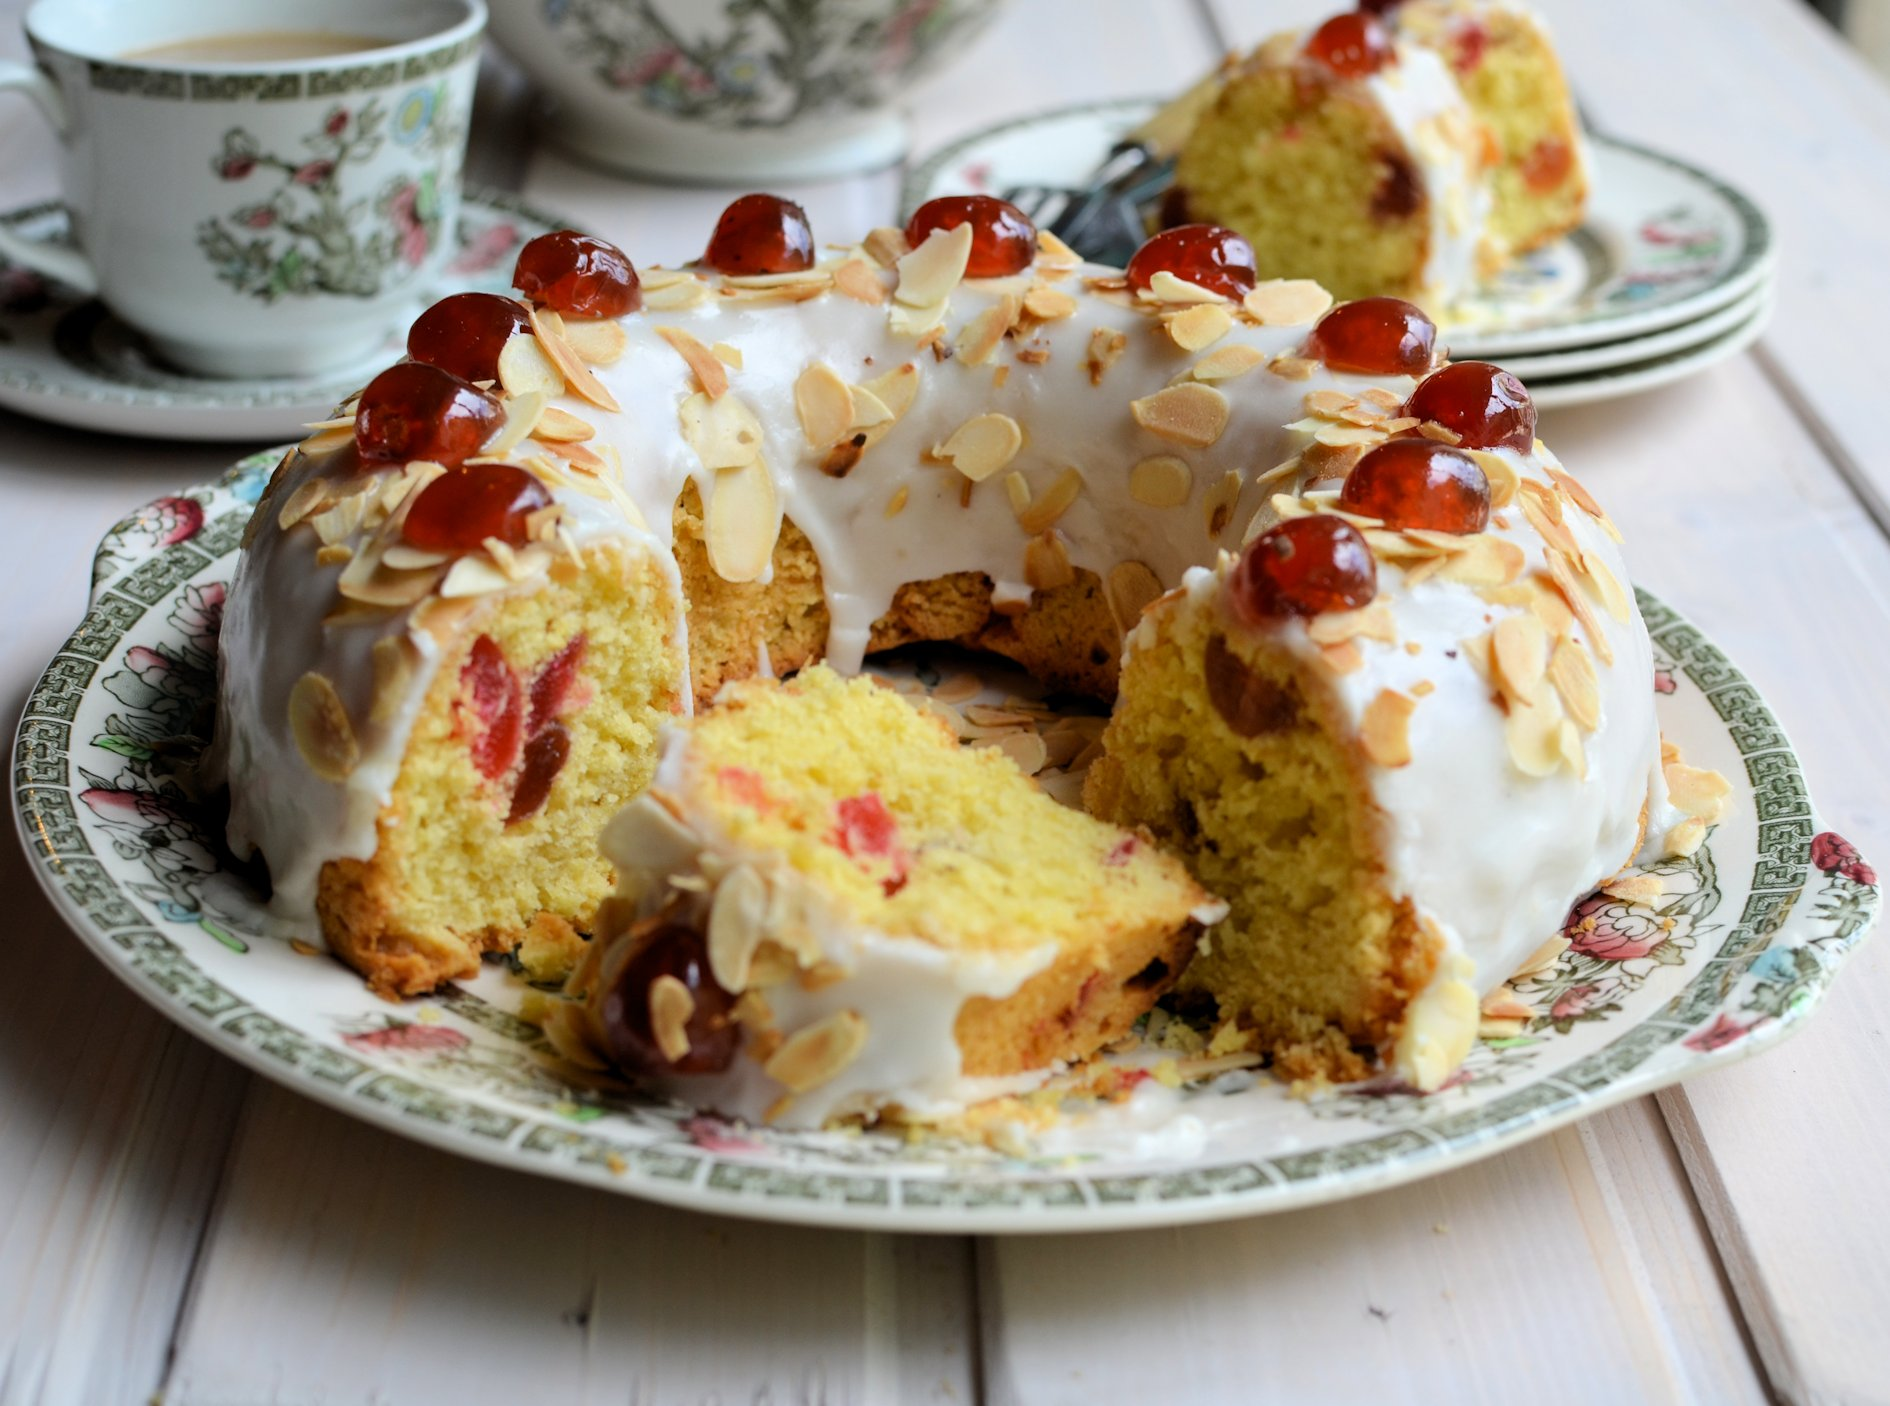 Great british bake off final: recipes - Photo 2 |Bake Off Recipes